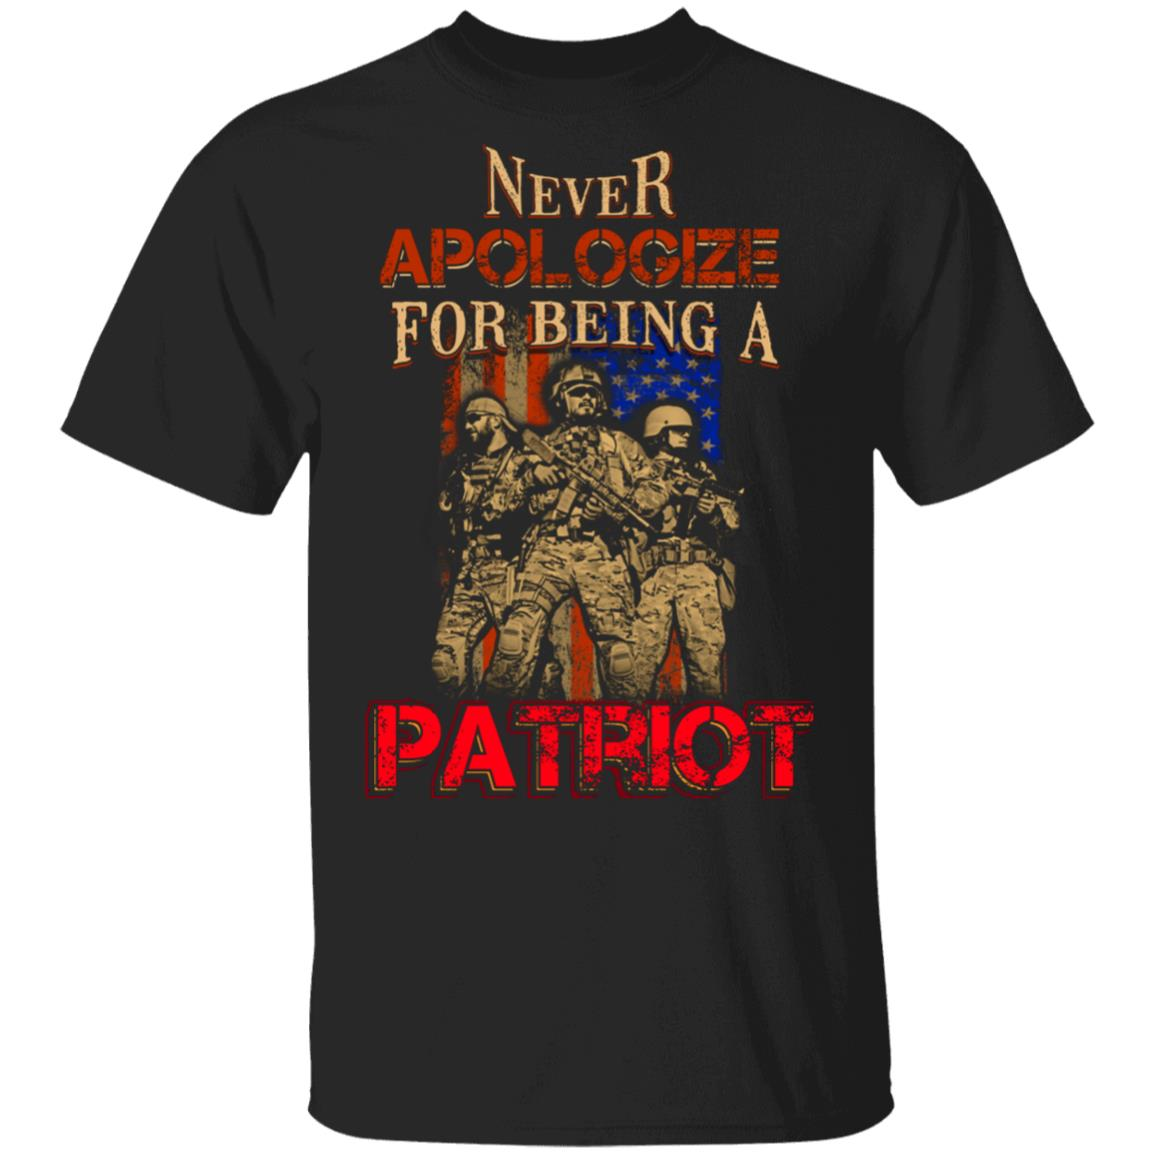 Patriot Veteran Shirt Never Apologize for Being a Patriot Shirts